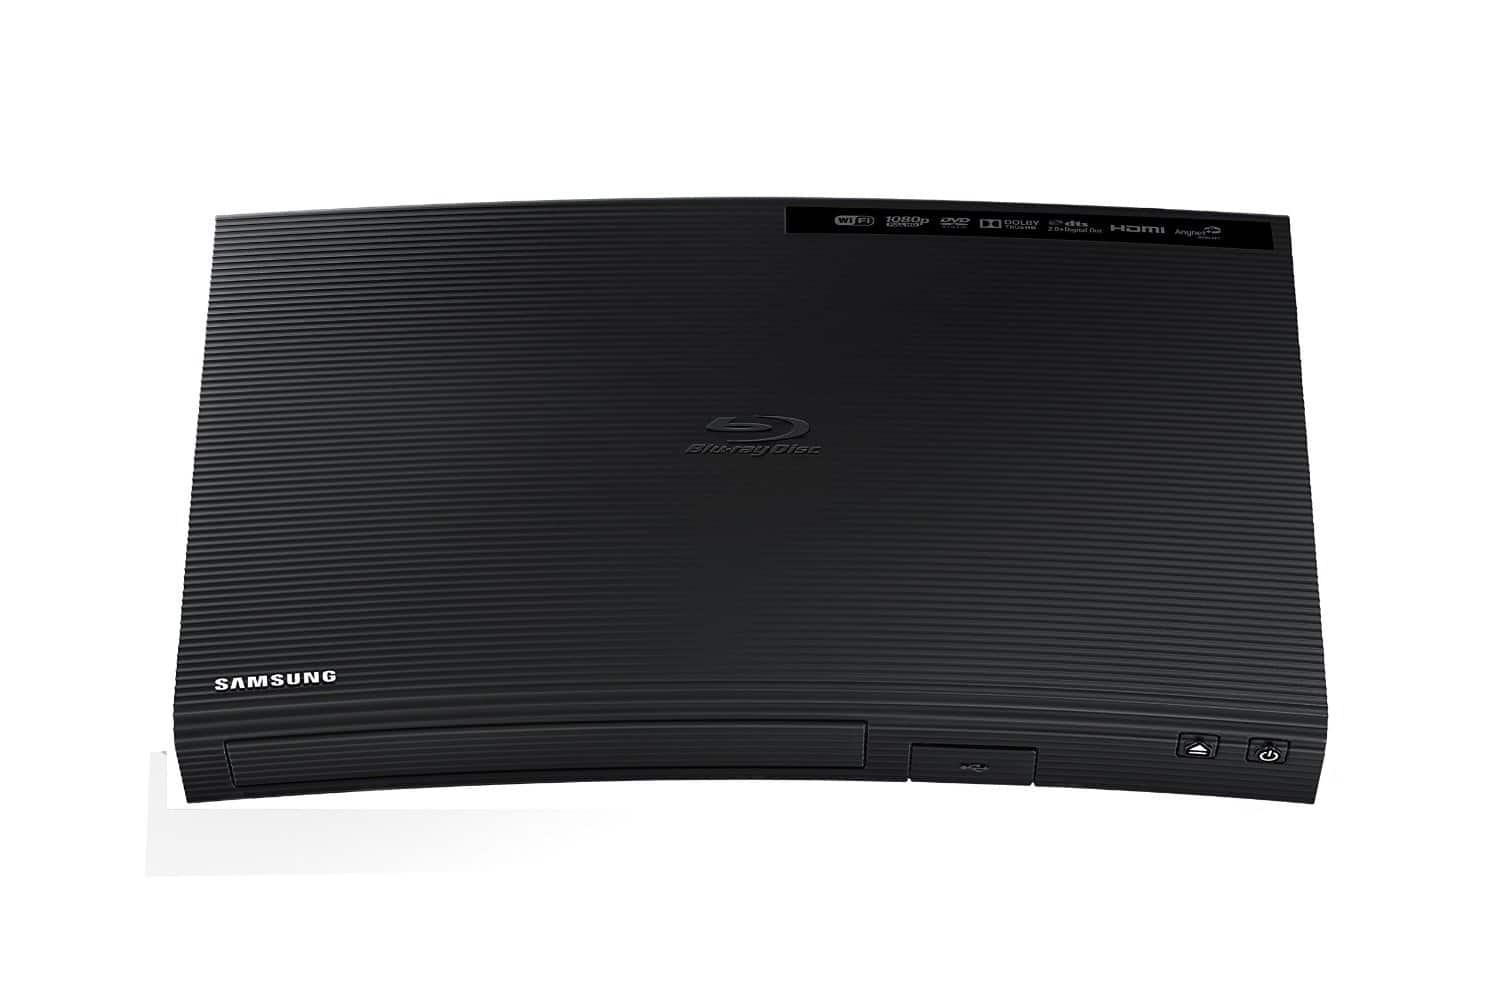 Samsung BD-J5700 Curved Blu-ray Player w/ Wi-Fi (Used - VG)  $27.30 & More